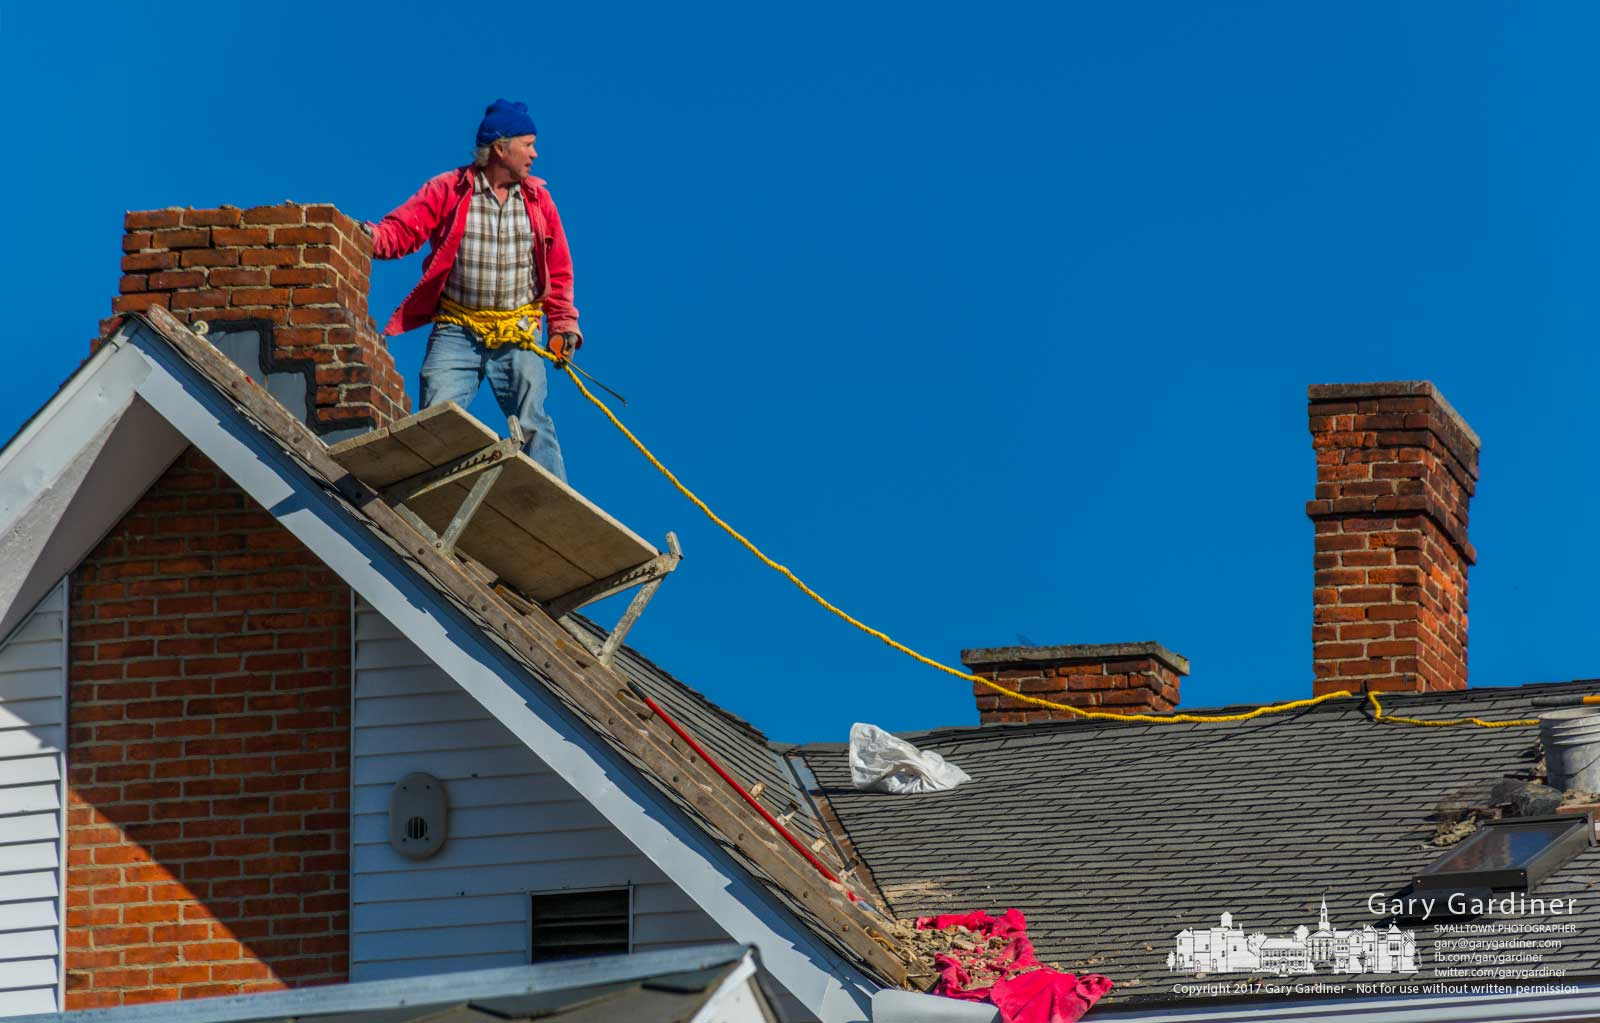 A brickmason surveys his position and movement on the roof of an East College house as he makes repairs to its chimneys. My Final Photo for Nov. 28, 2017.